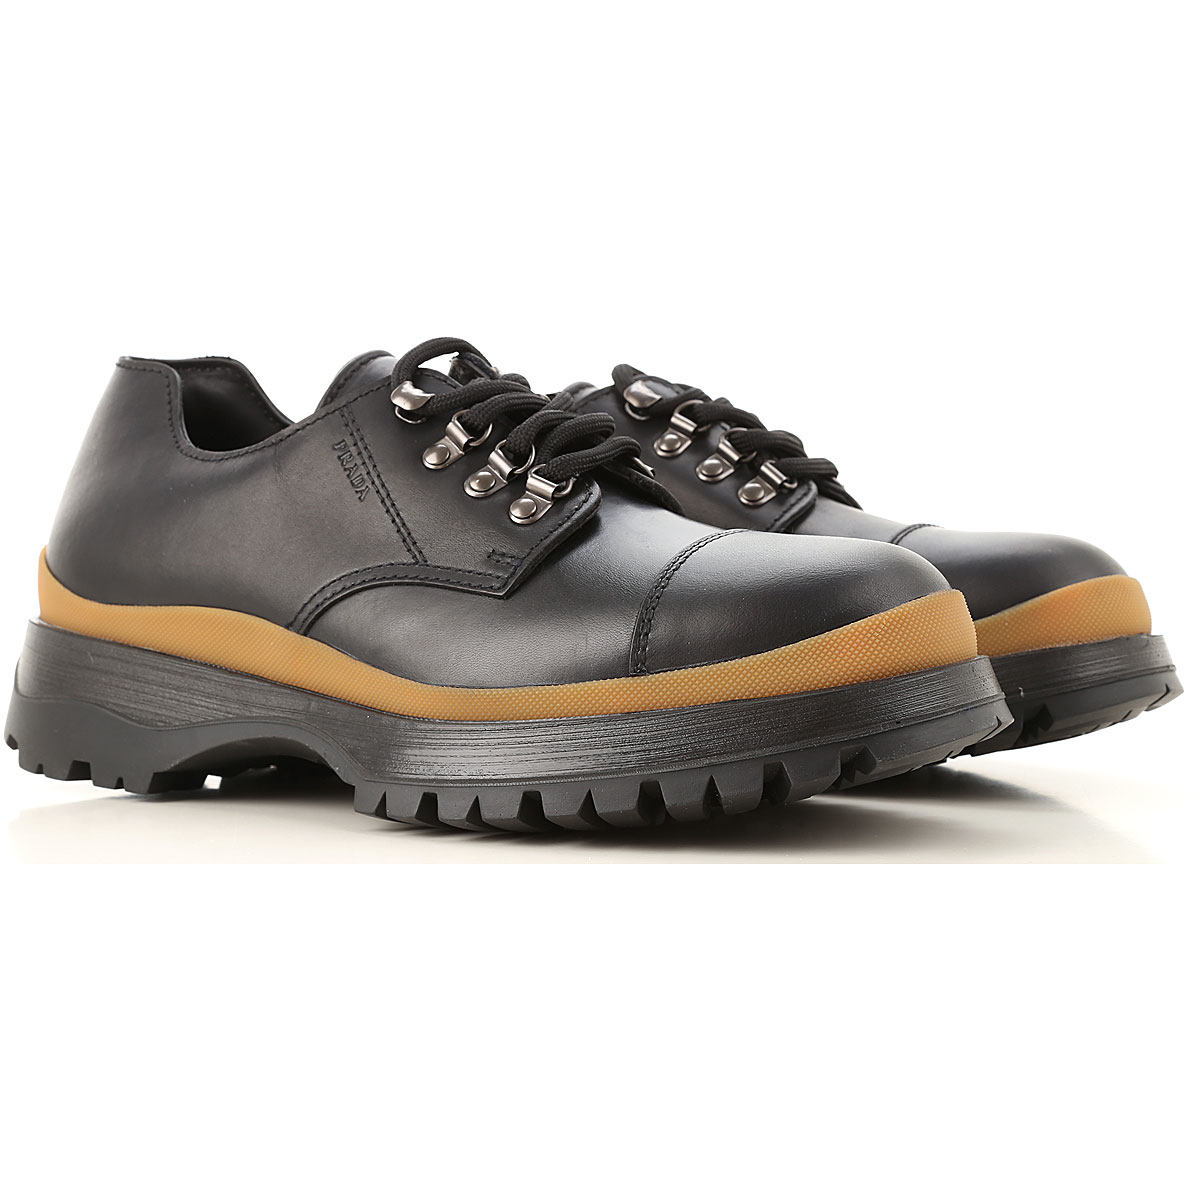 Prada Lace Up Shoes for Men Oxfords Derbies and Brogues On Sale Canada - GOOFASH - Mens FORMAL SHOES